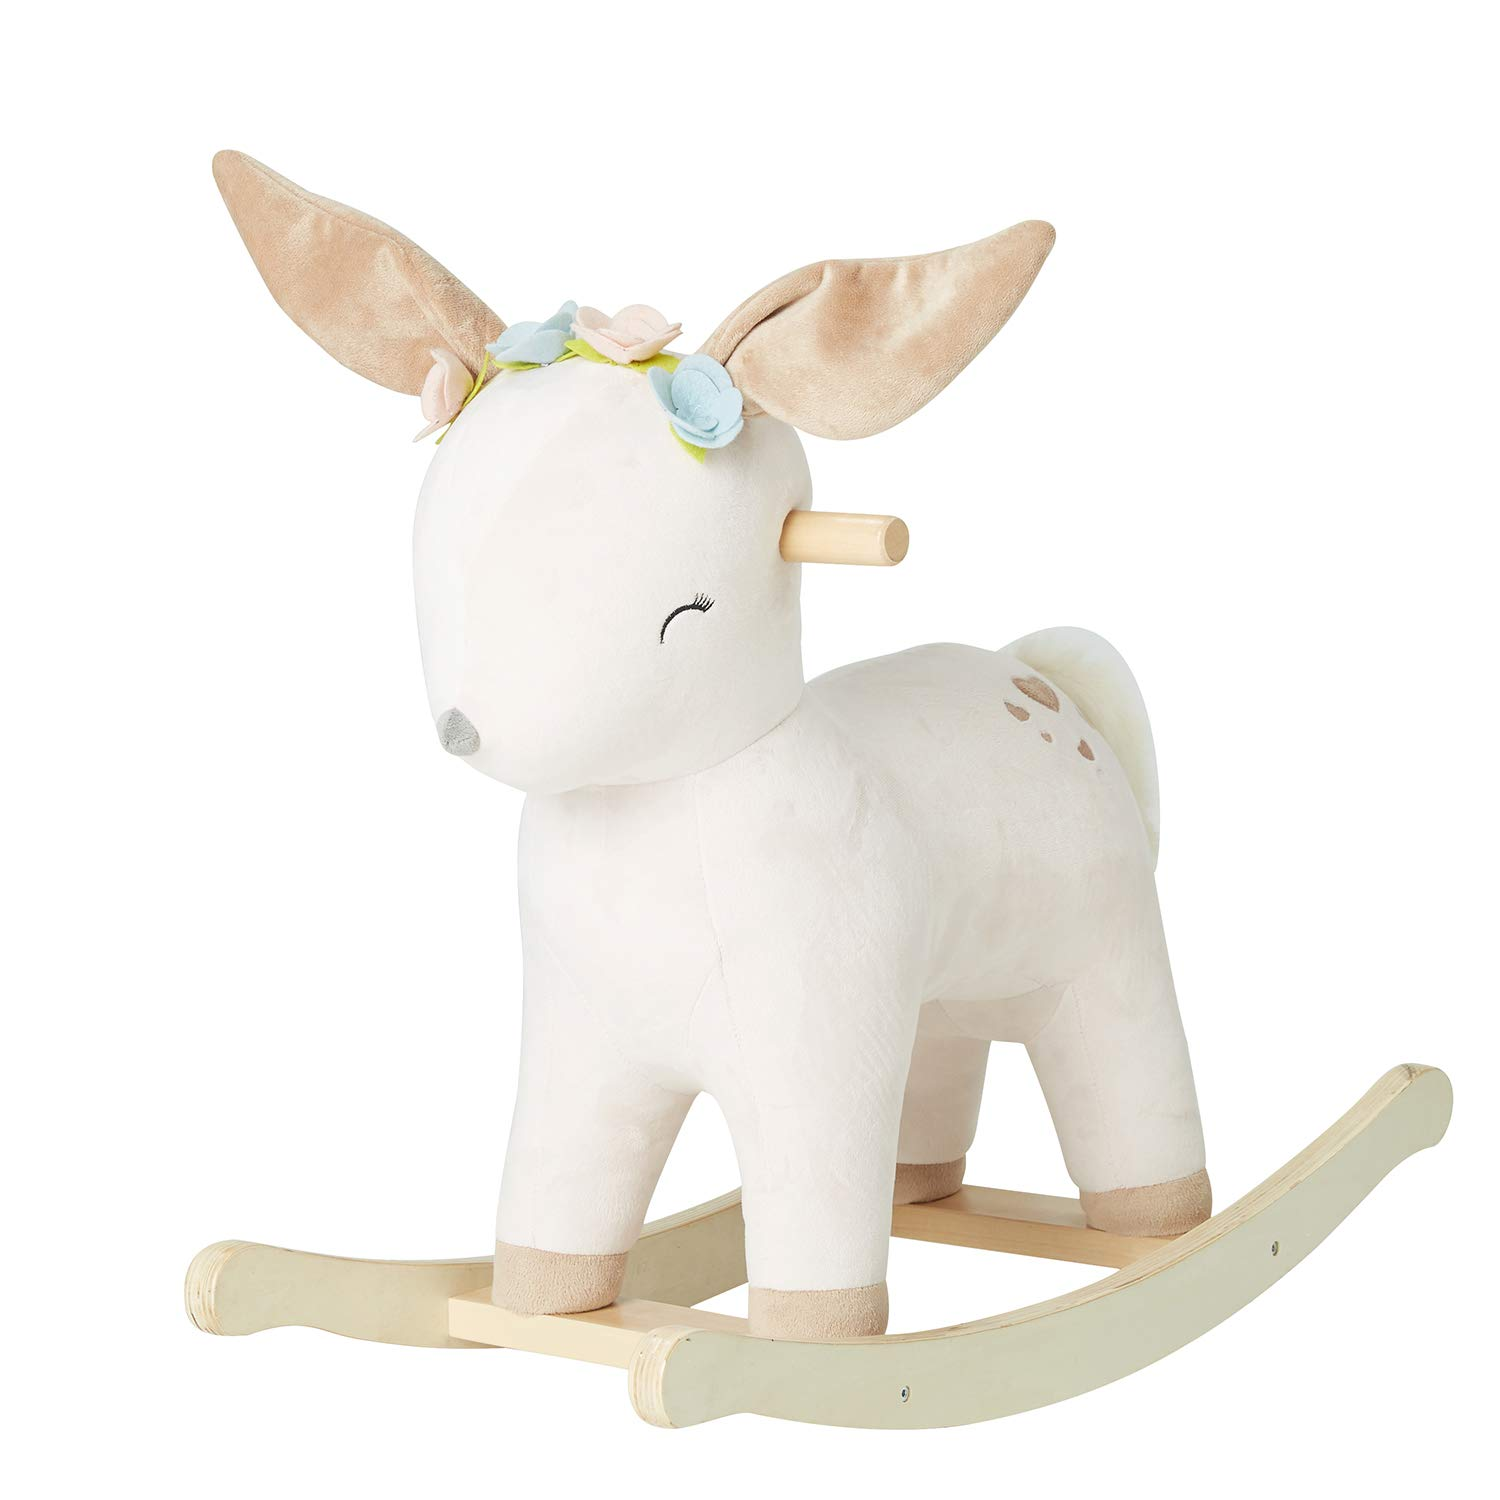 labebe 【New】 Baby Rocking Horse Plush, Female Deer Rocker Toy for Child 1-3 Years, Fawn Rocking Horse/Deer Rocker/Deer Rocking Horse/Ride On Toy/Rocking Horse for Toddler/Rocking Chair for Baby